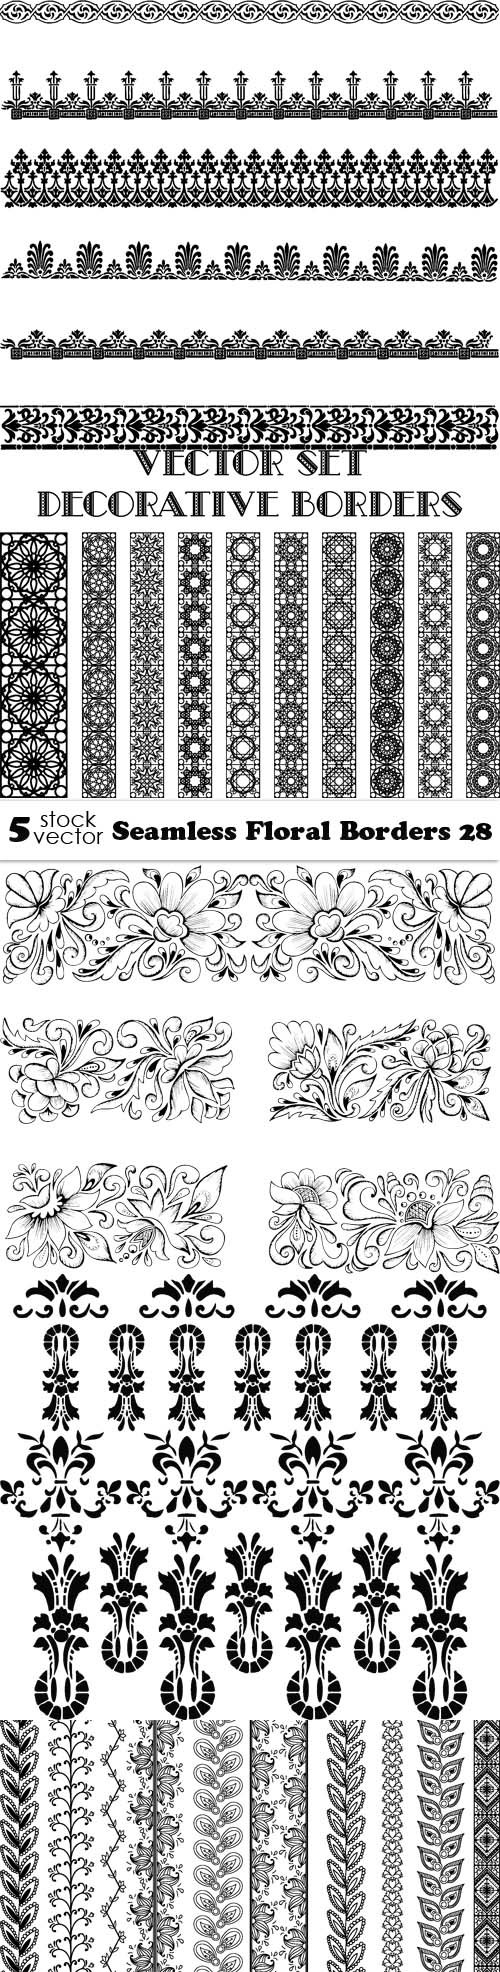 Vectors - Seamless Floral Borders 28